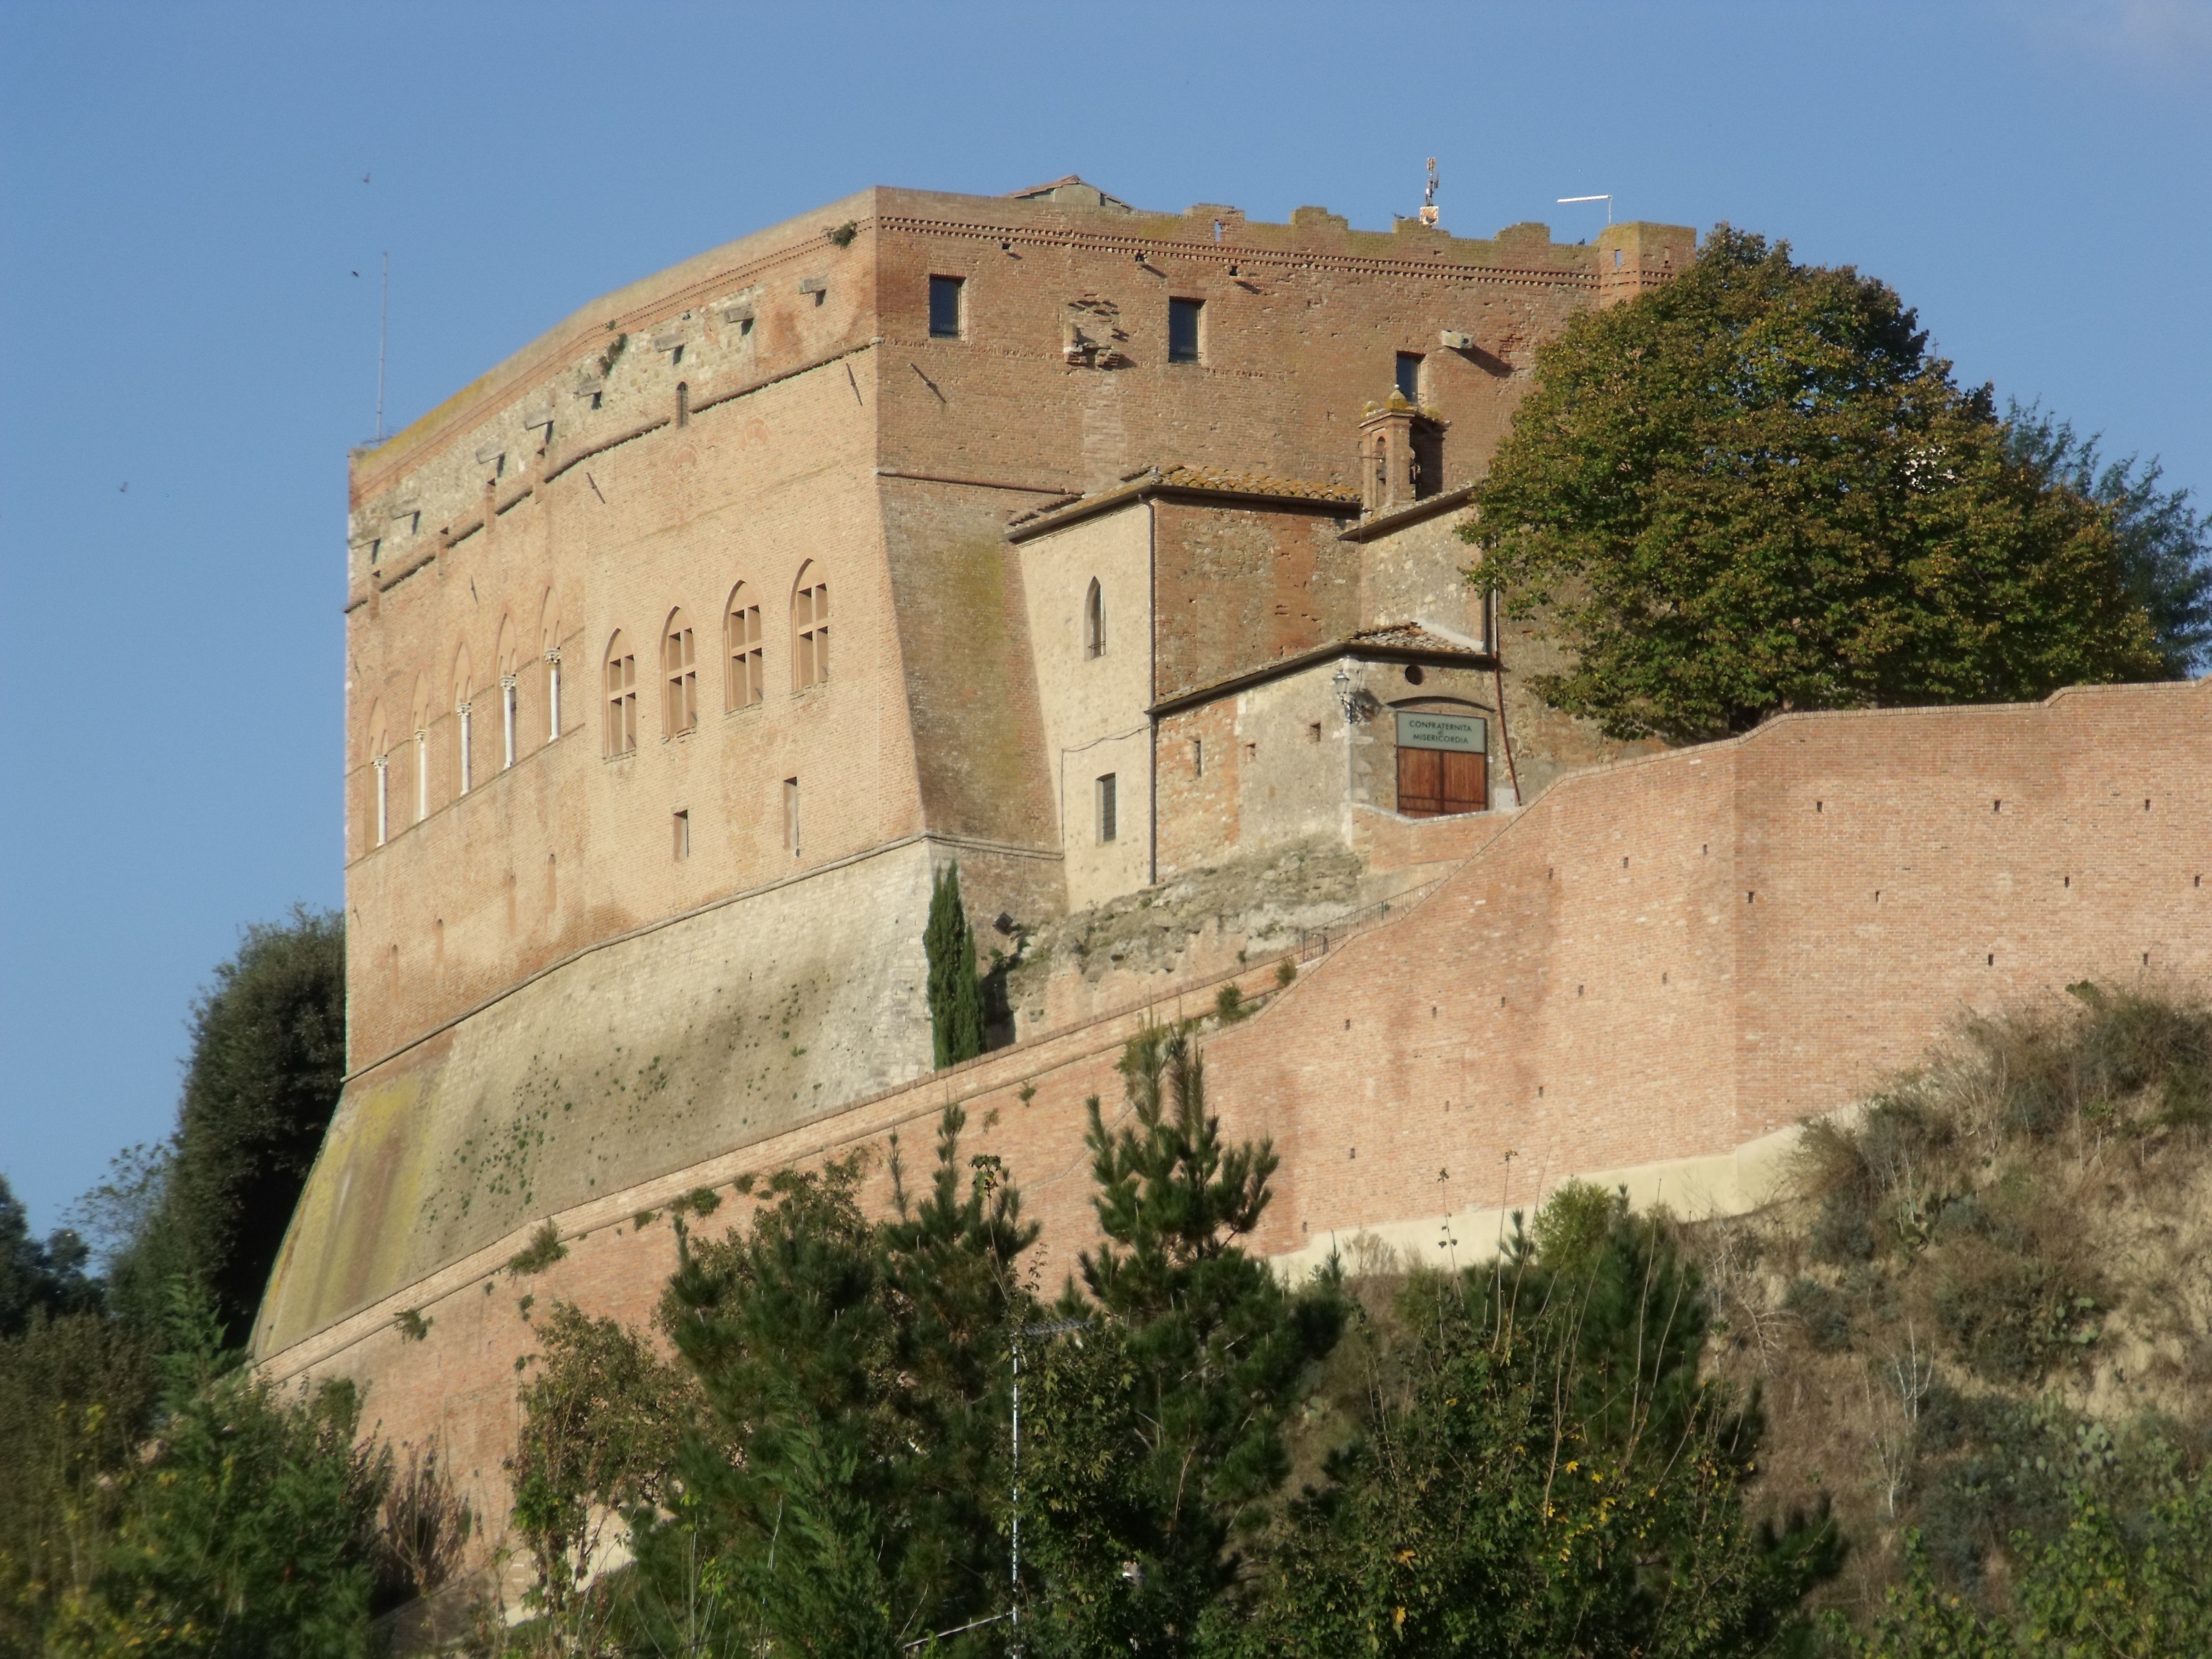 The Castle of San Giovanni d'Asso | Inner Entrance to the Castle